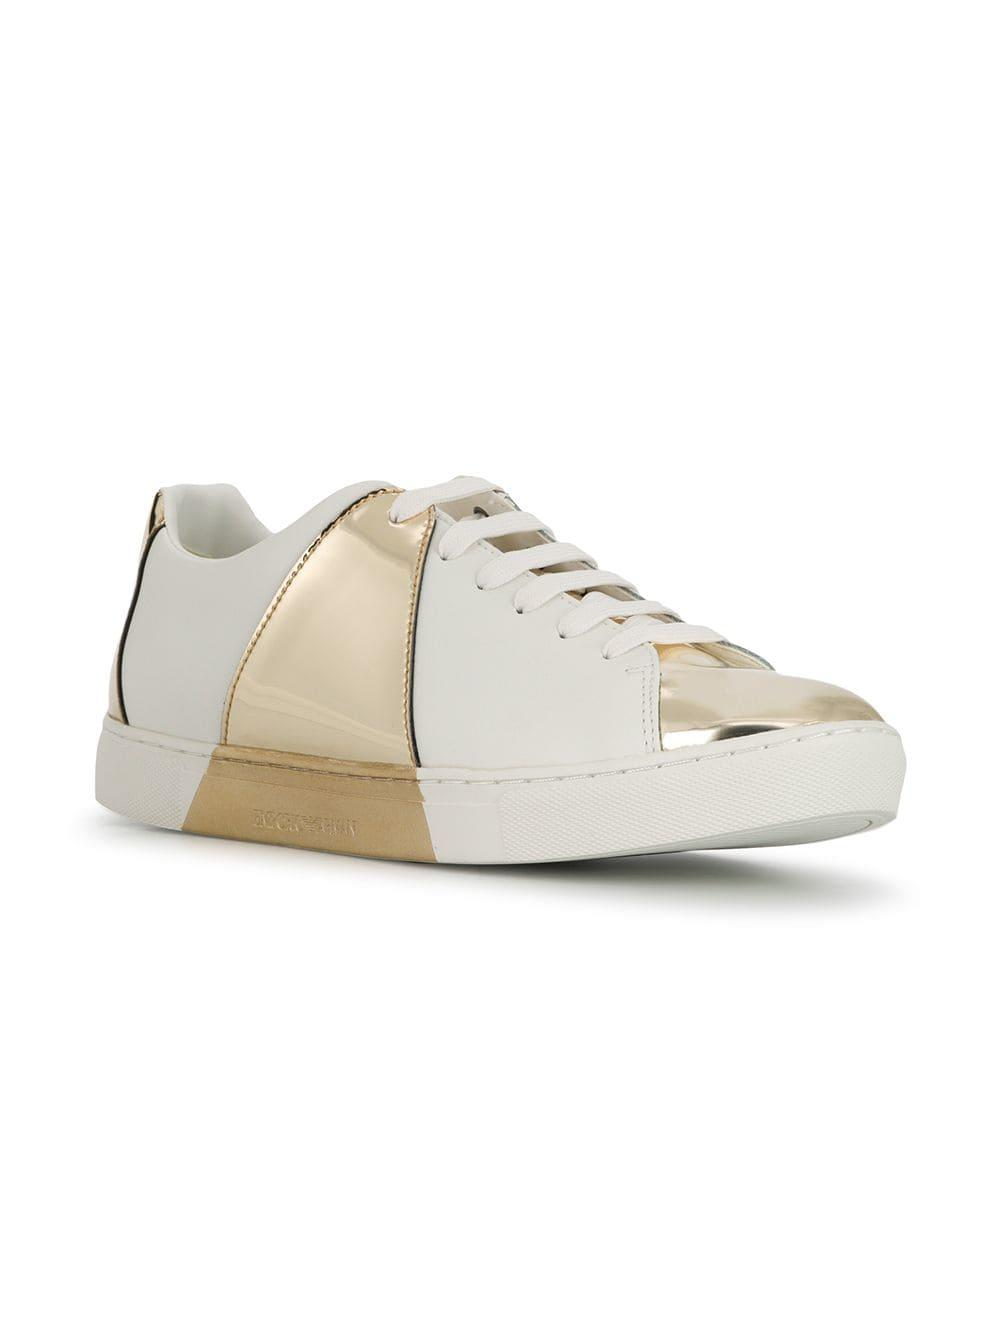 430b4b1be0 Emporio Armani Classic Sneakers With Mirror Detail in White - Lyst